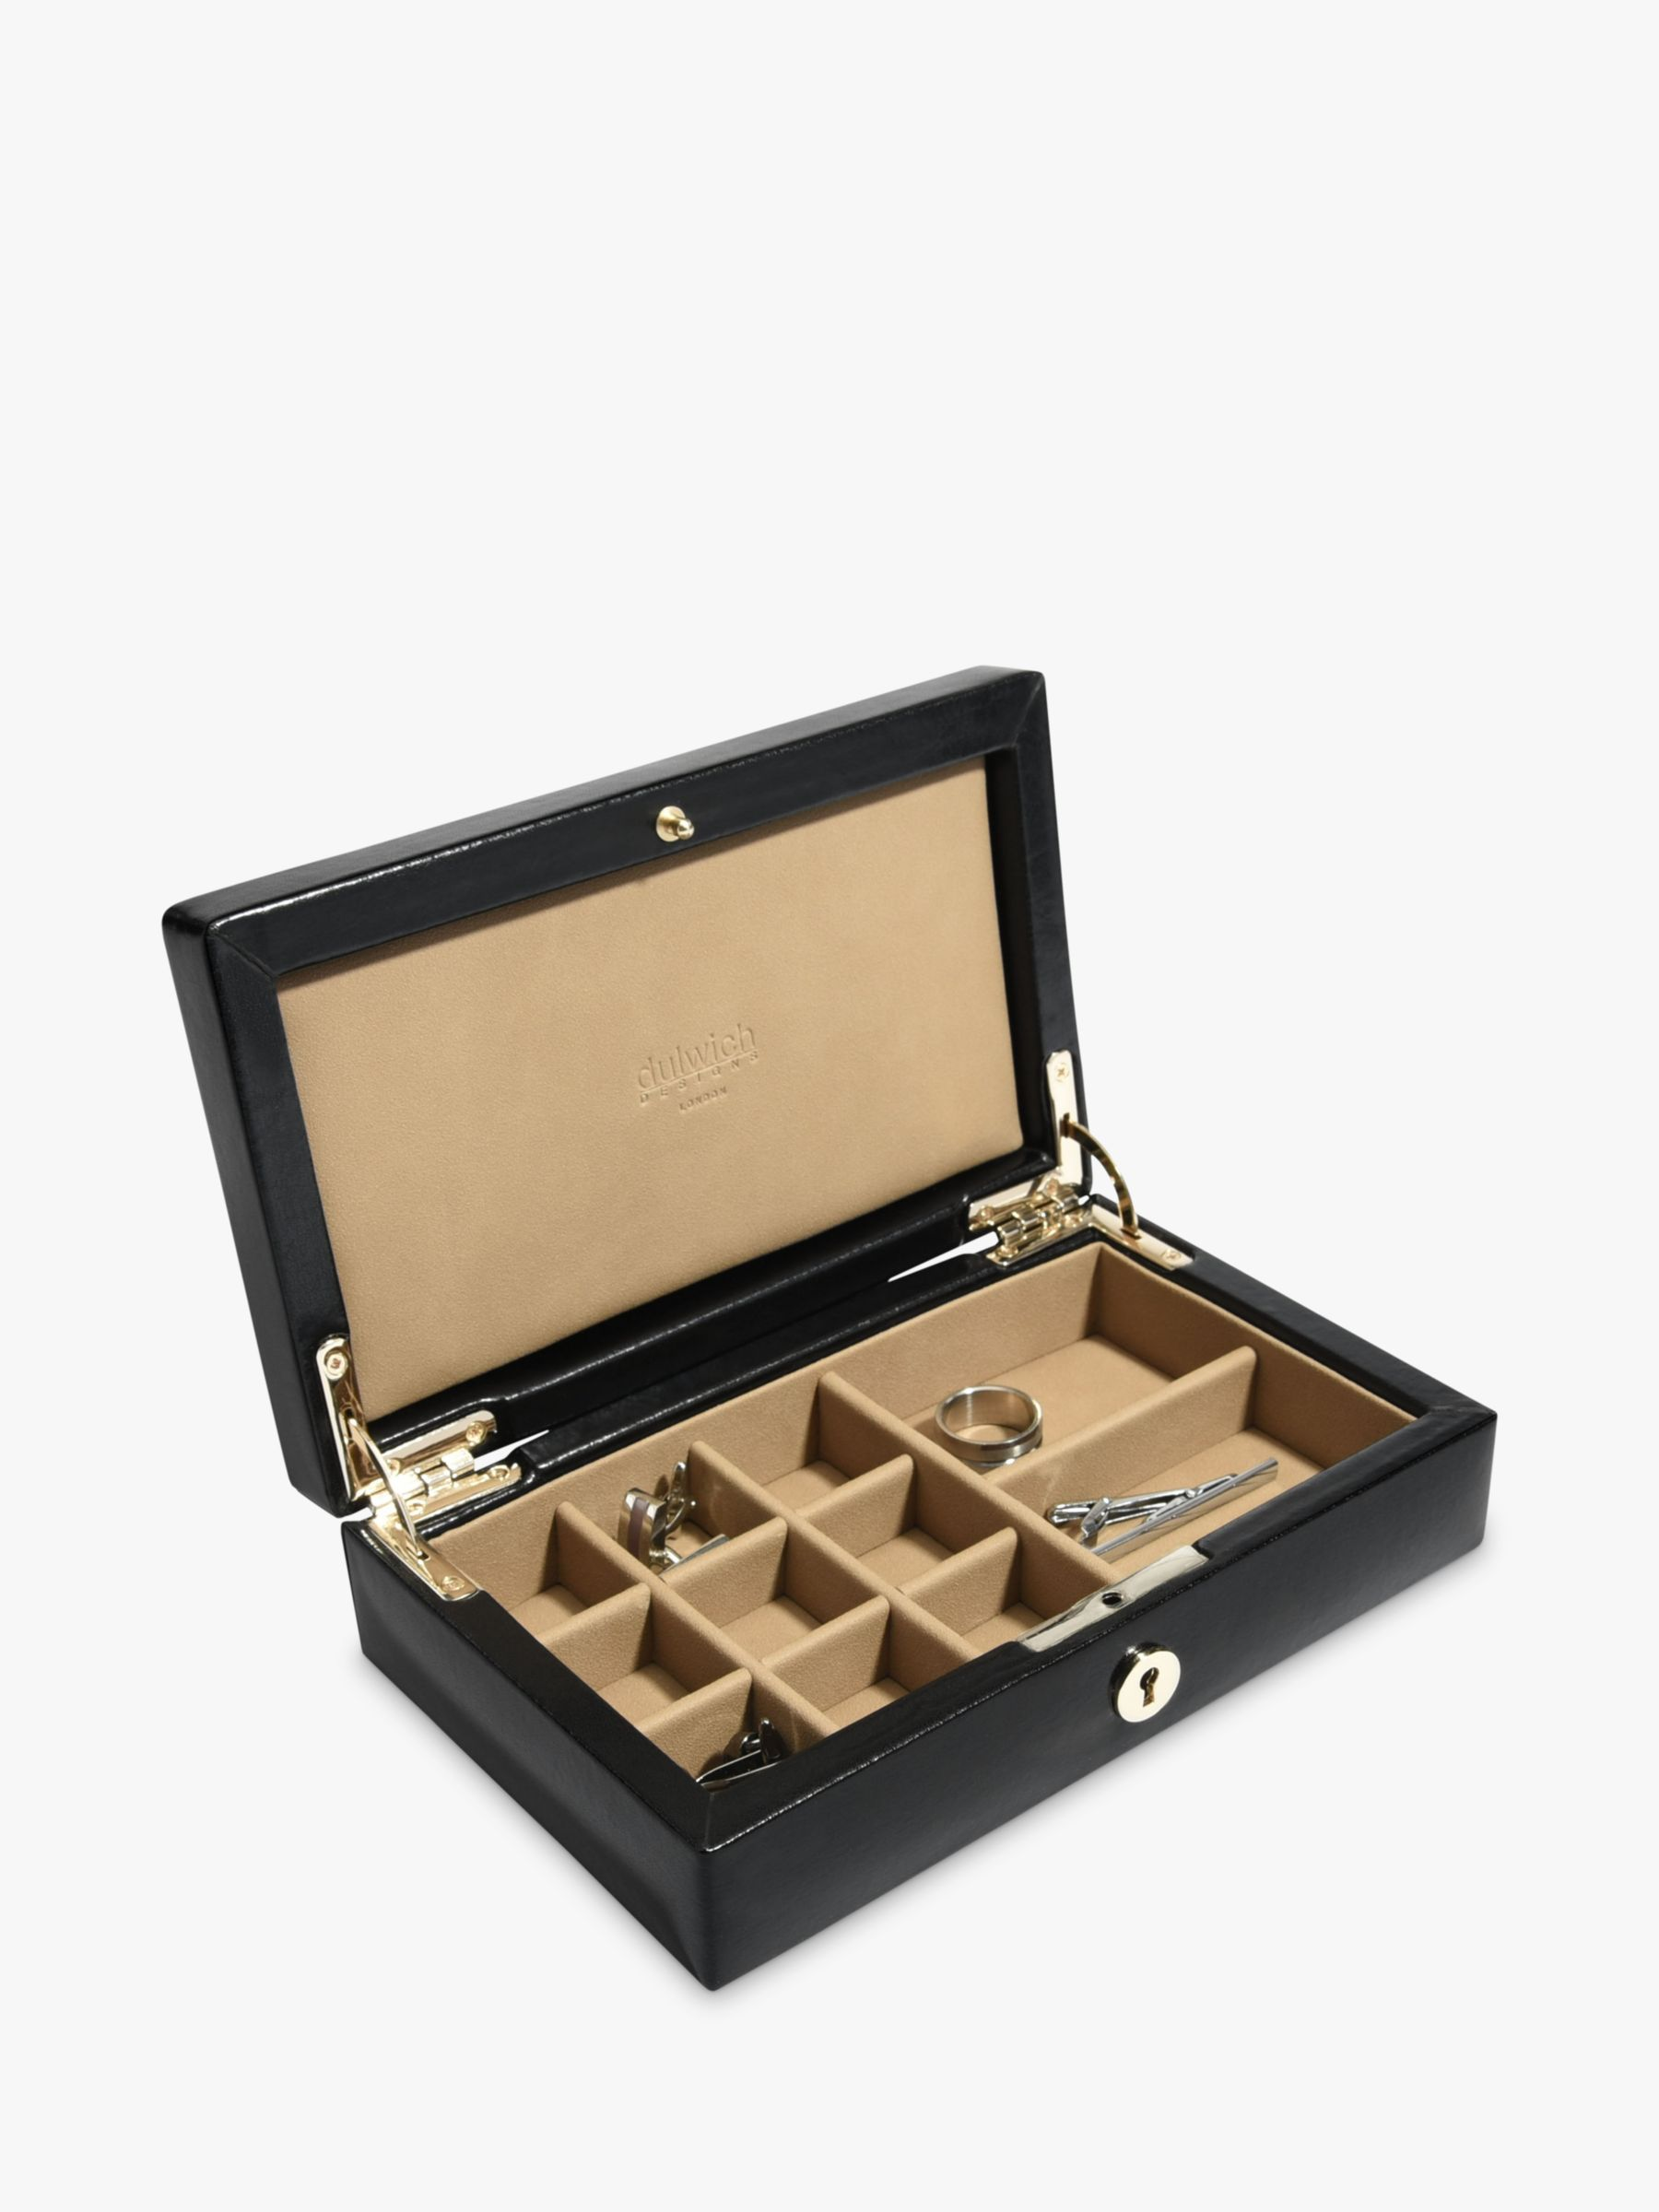 Dulwich Designs Dulwich Designs Leather Windsor Cufflinks Box